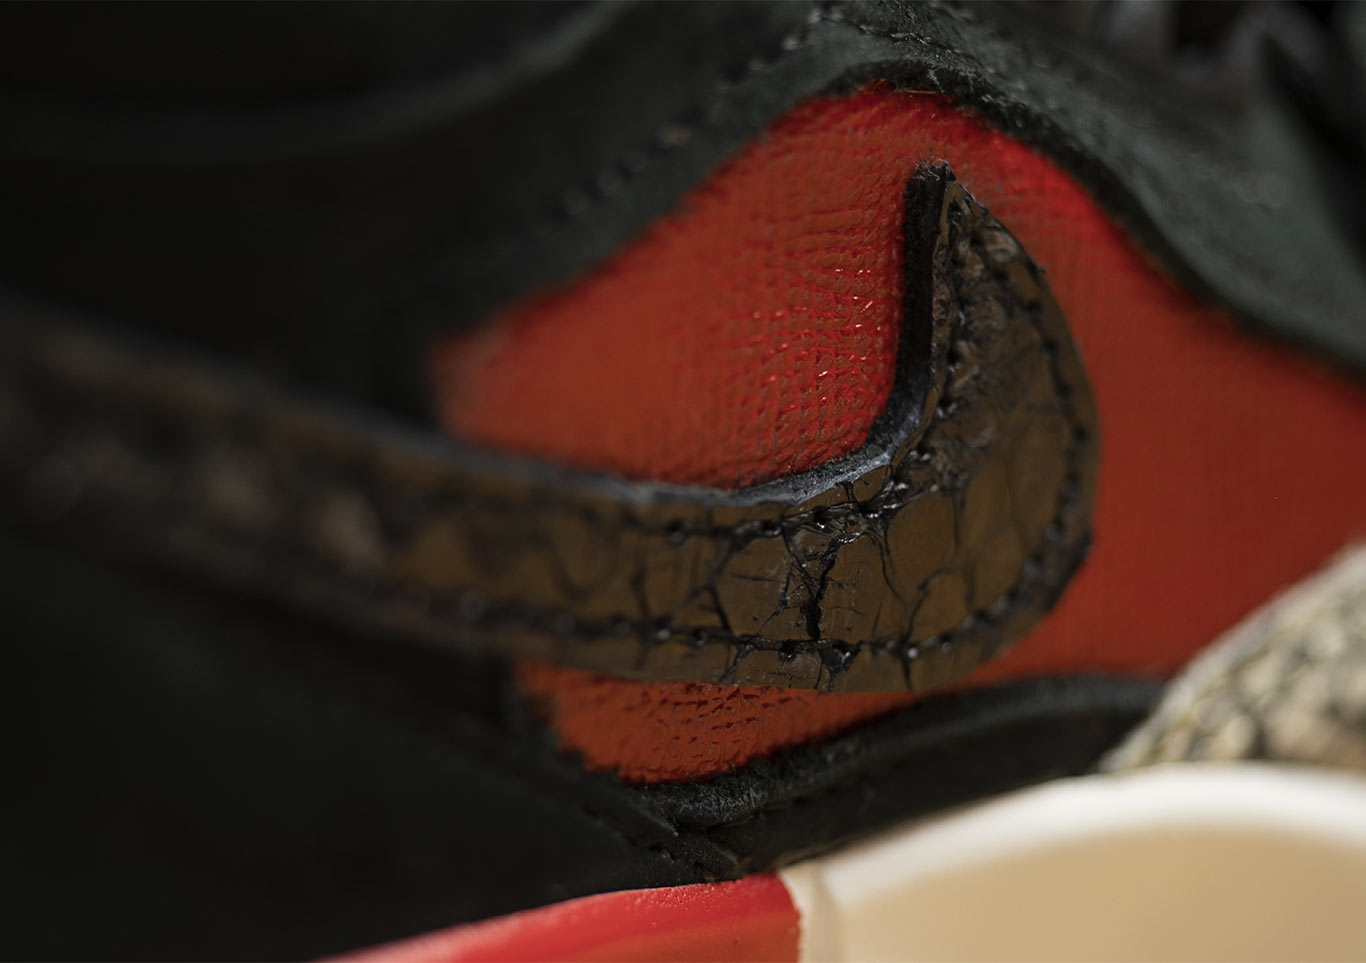 Extreme closeup of a side view of a Nike sneeker